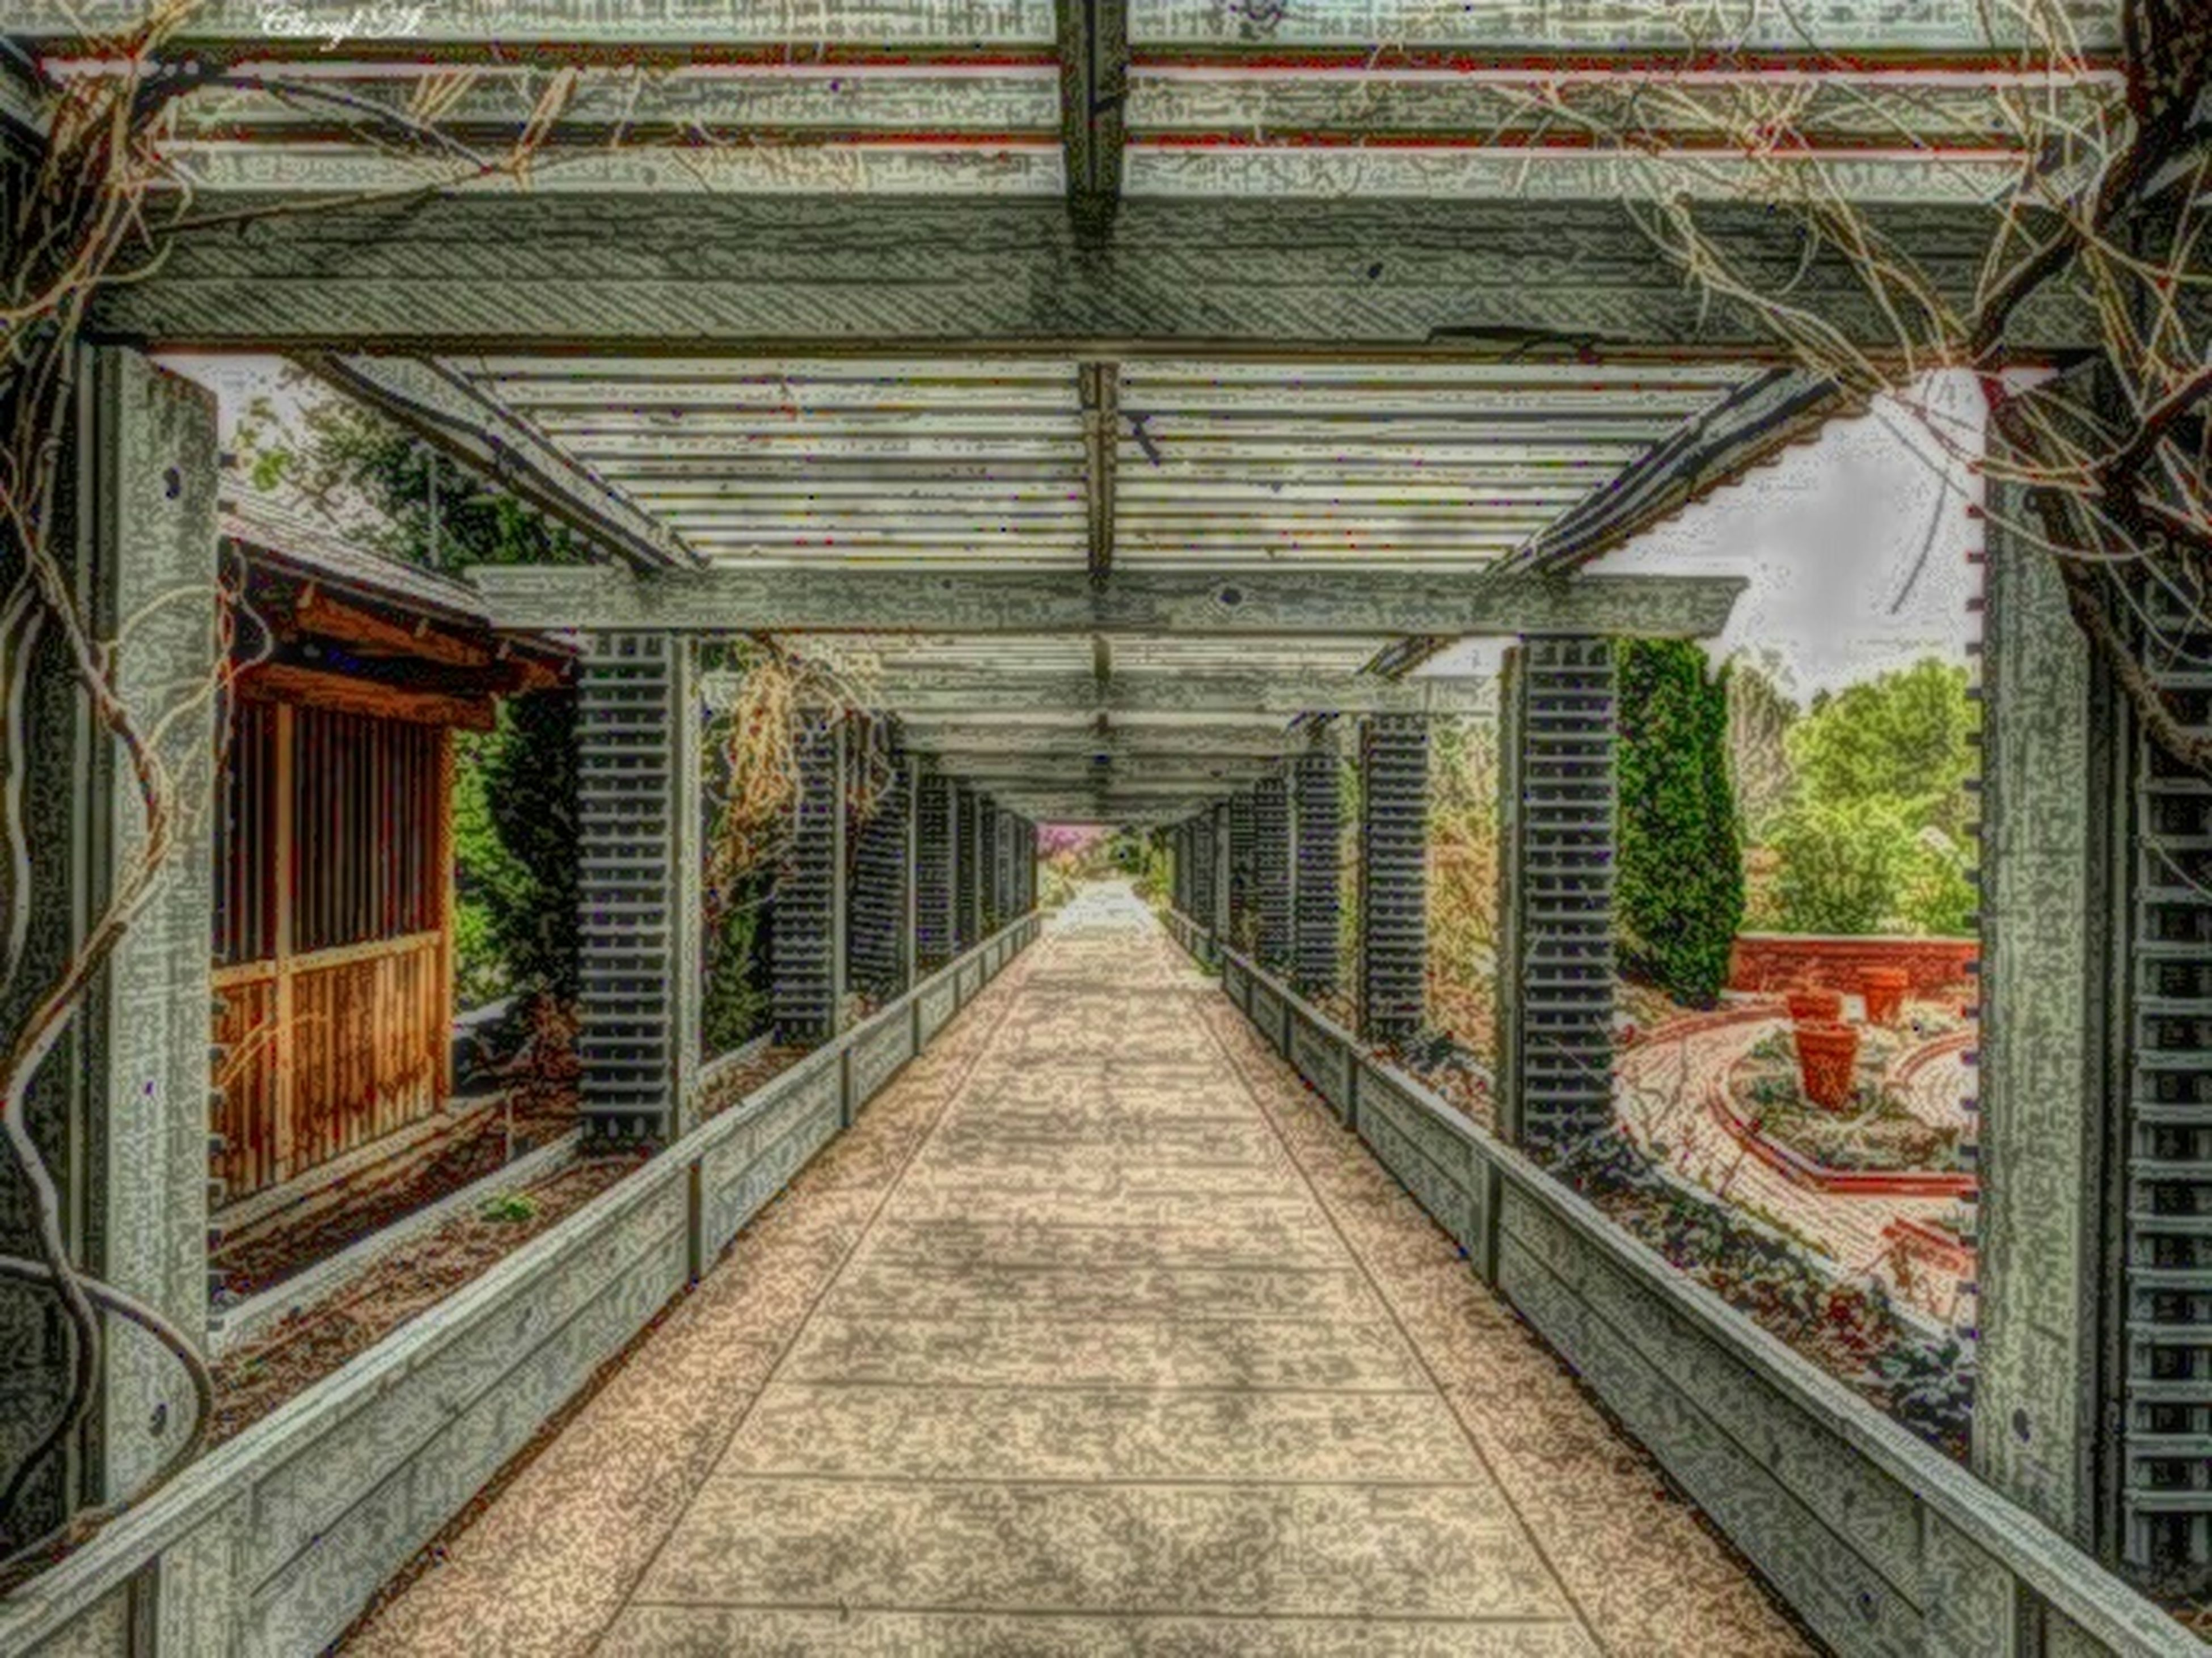 architecture, built structure, the way forward, diminishing perspective, railroad track, vanishing point, building exterior, rail transportation, transportation, railing, day, metal, connection, no people, long, ceiling, empty, building, walkway, outdoors